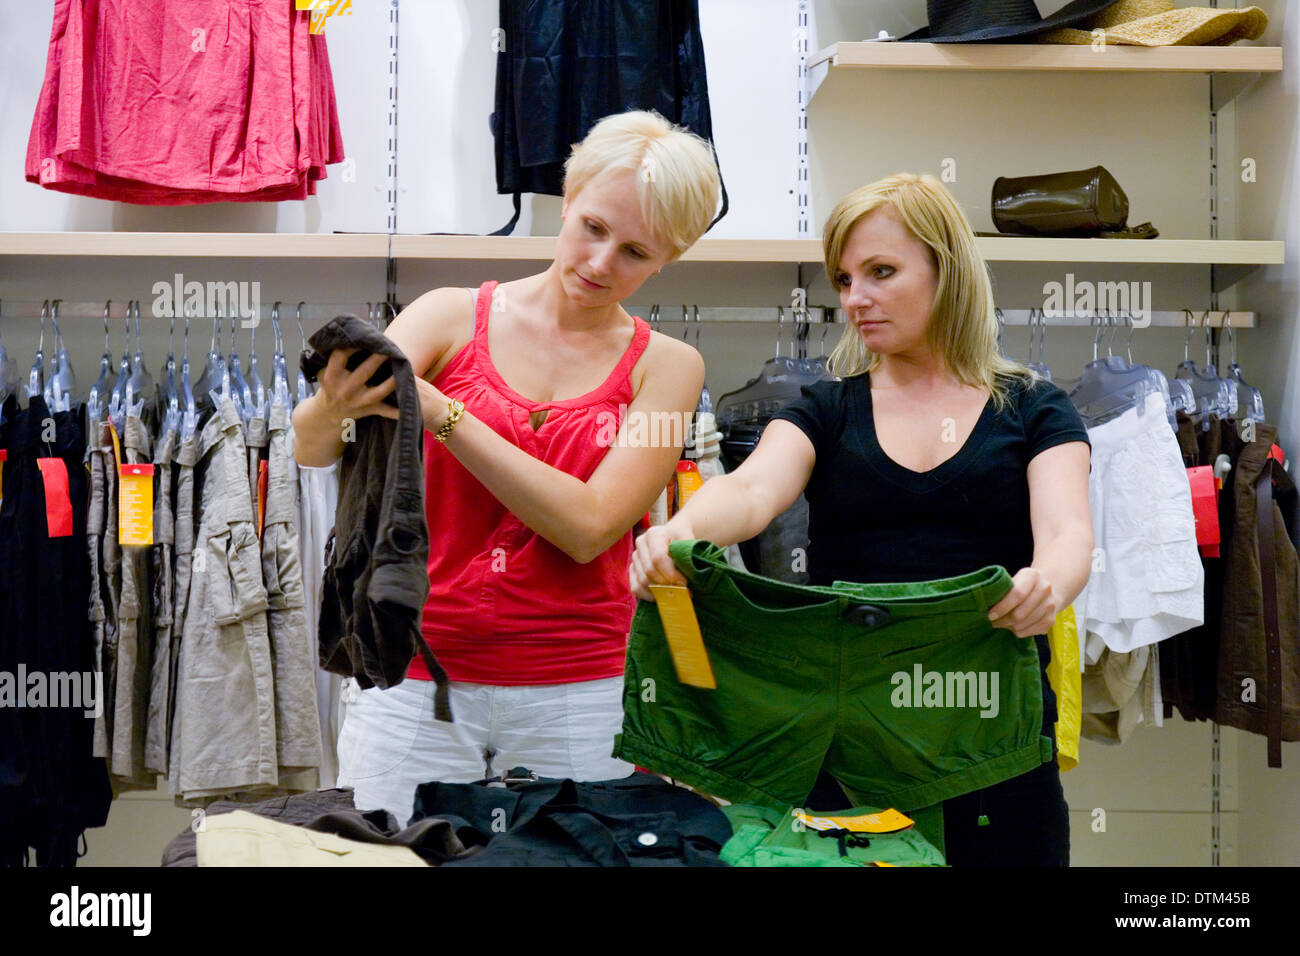 Two women comparing different clothes in shop. Retail store, fashion. Stock Photo